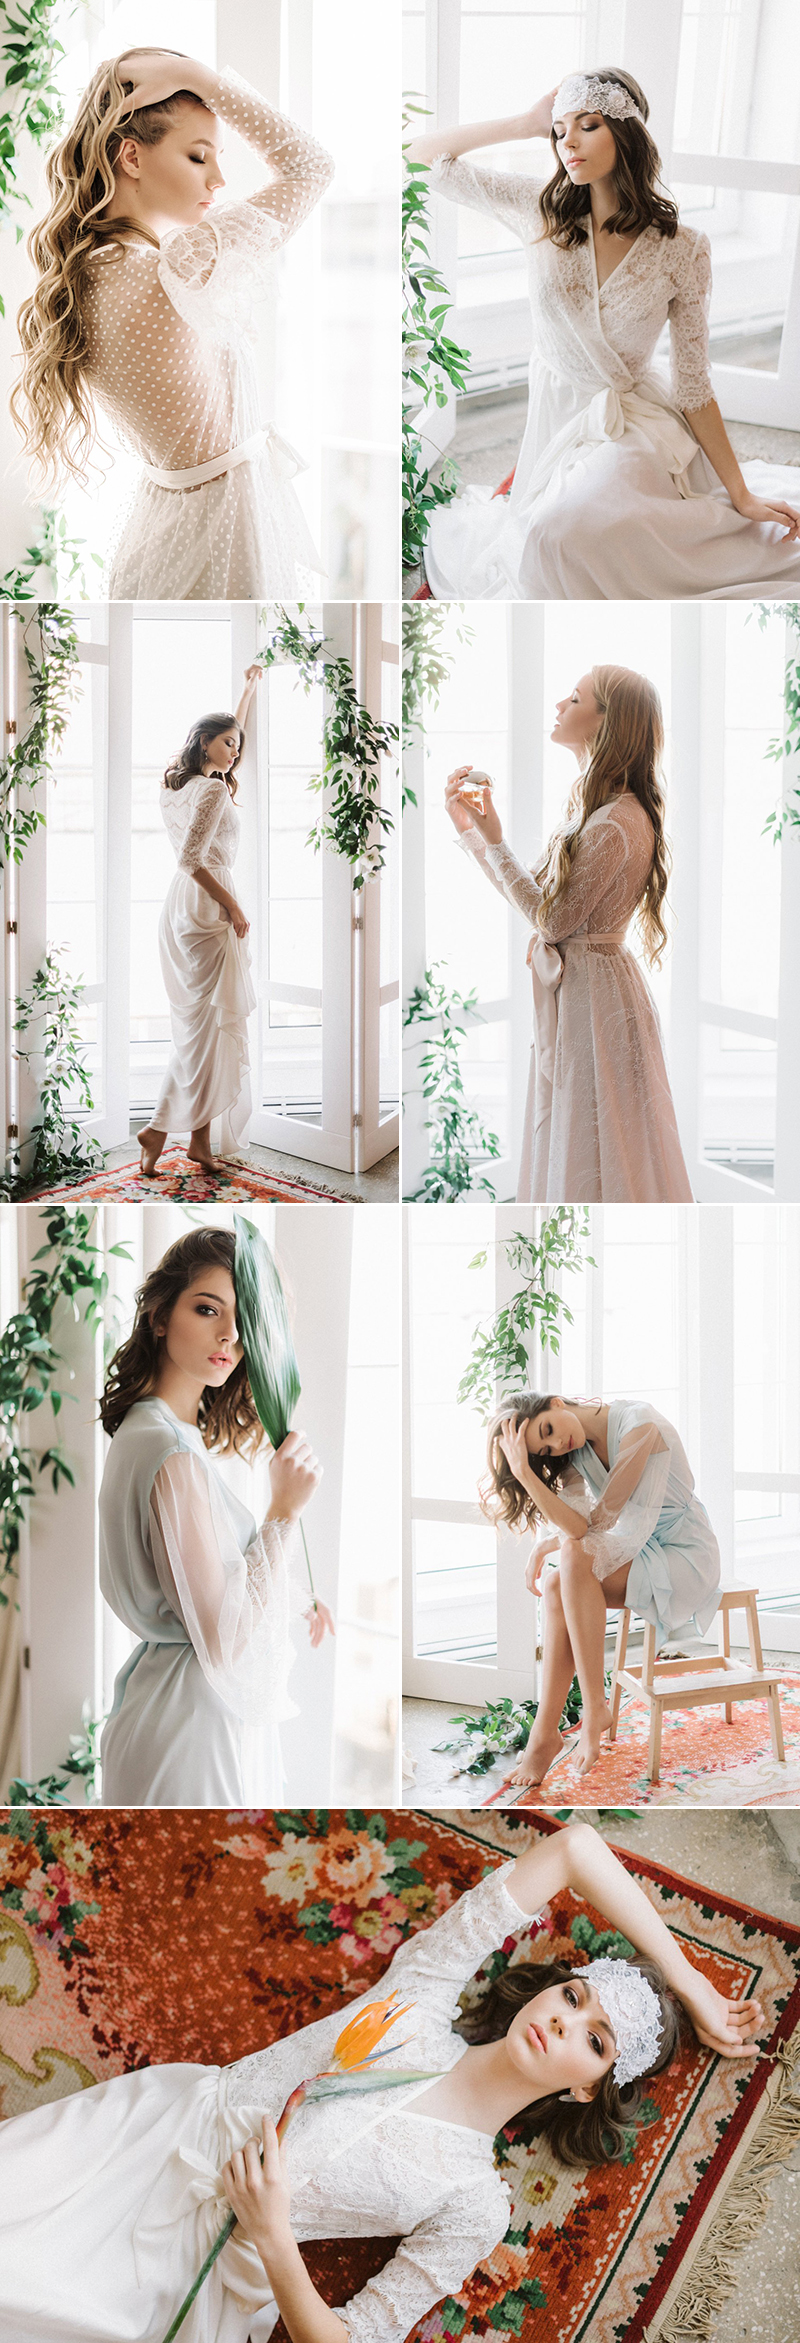 Wedding bridal getting ready boudoir robe